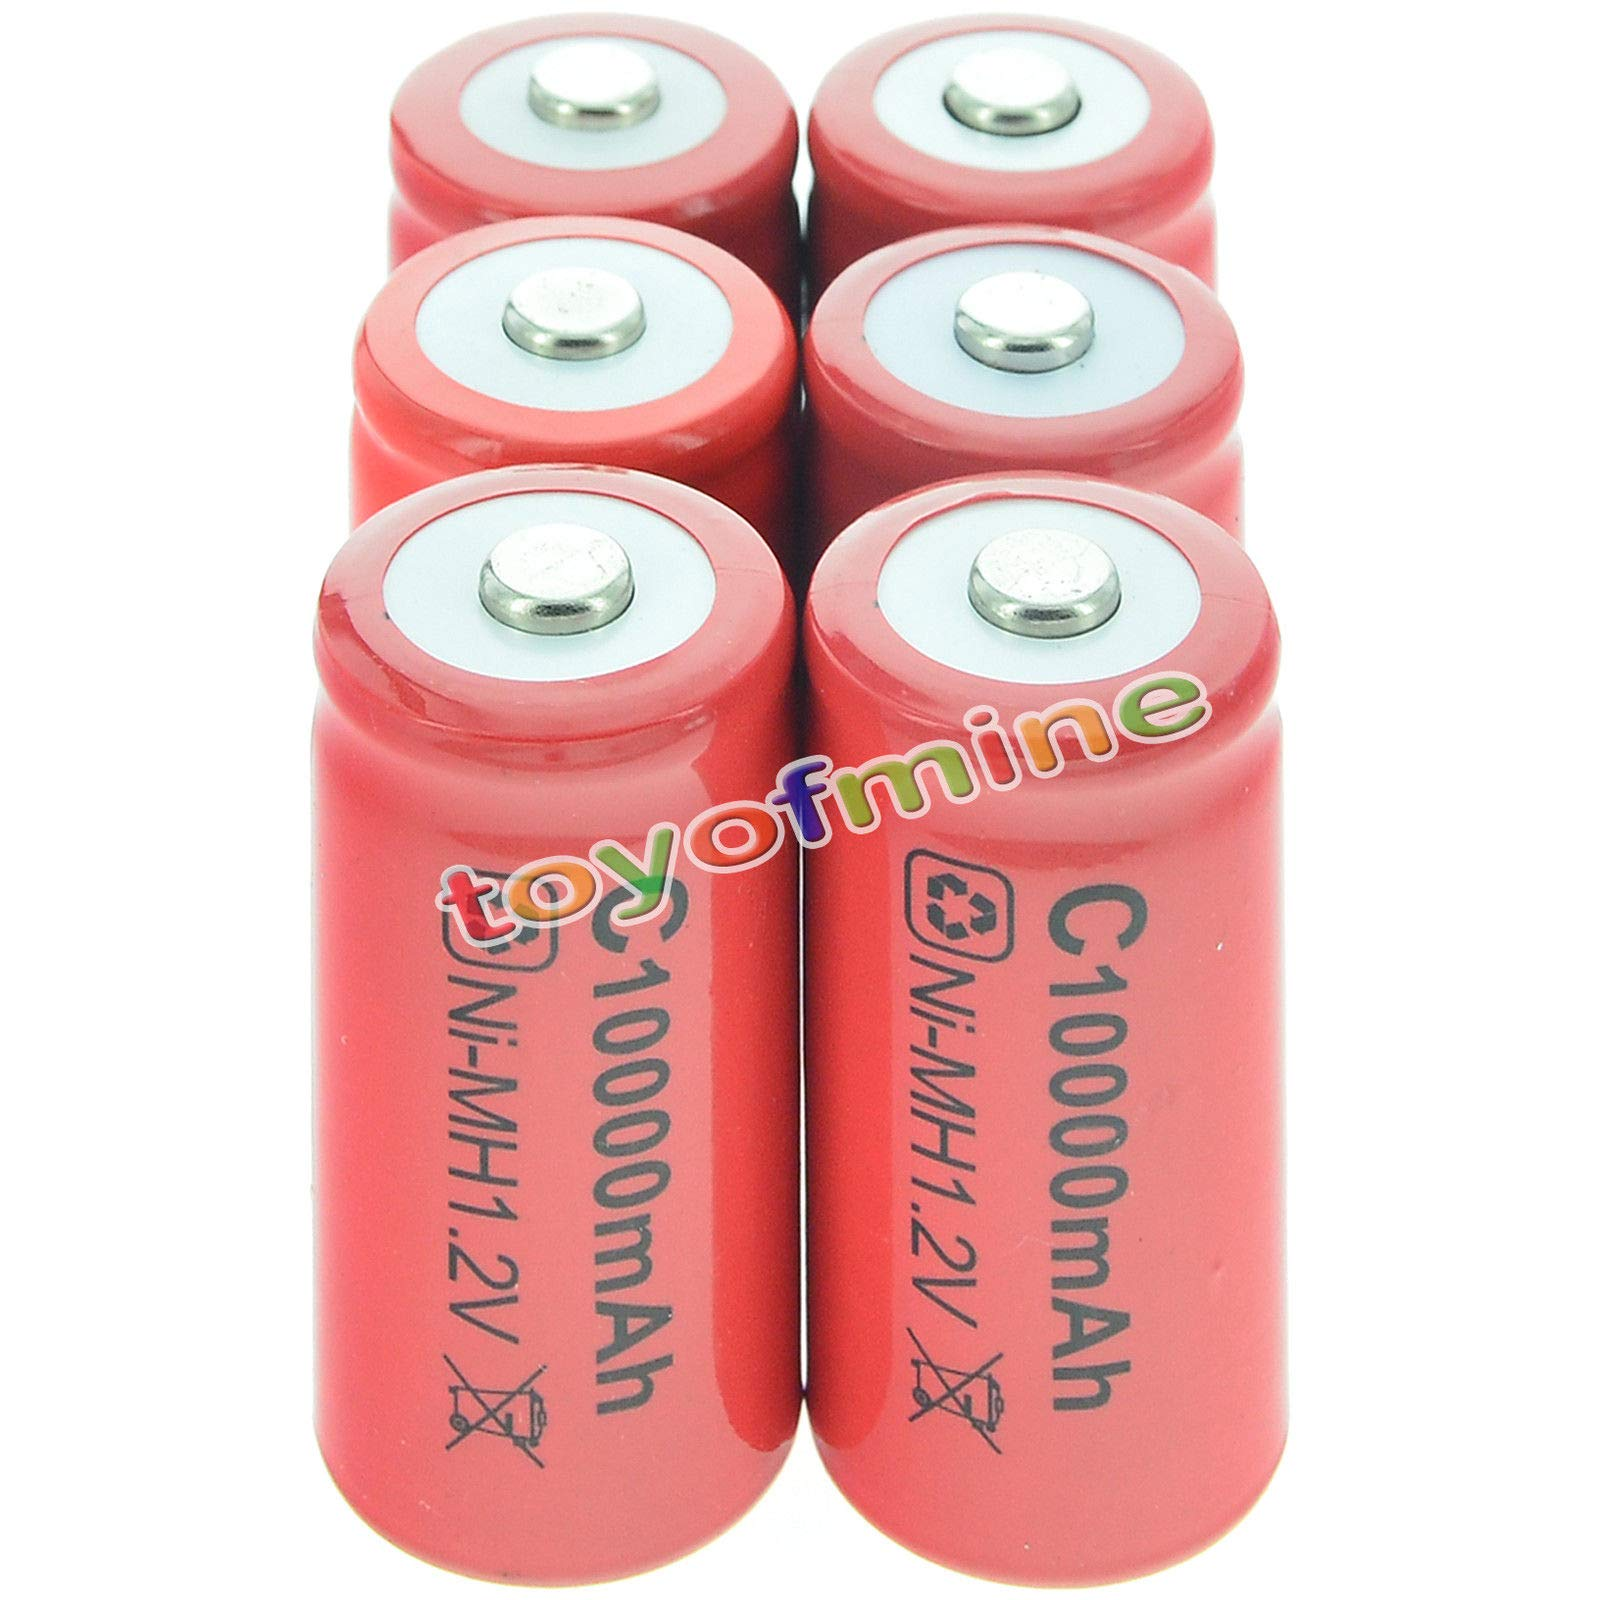 toyofmine 6pcs C size Rechargeable Battery 1.2V 10000mAh Ni-MH